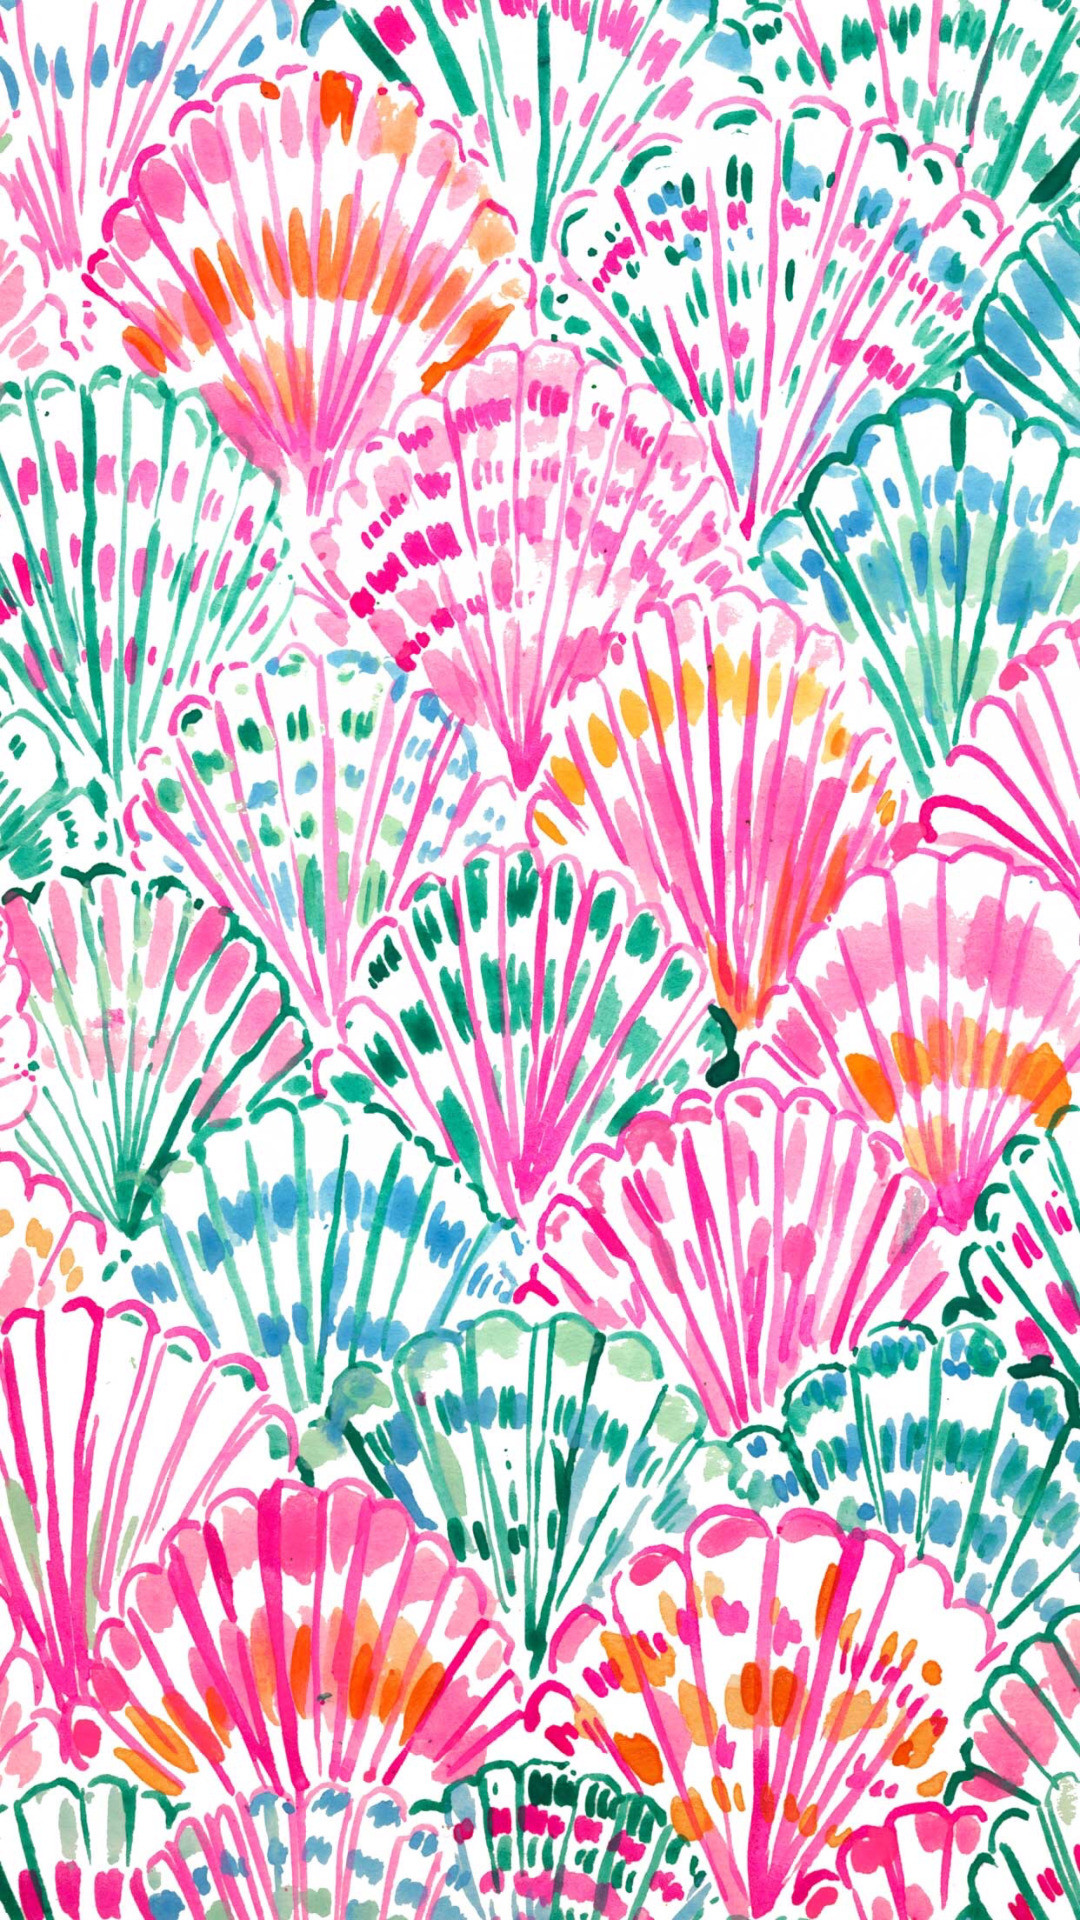 lilly pulitzer wallpaper desktop 56 images. Black Bedroom Furniture Sets. Home Design Ideas